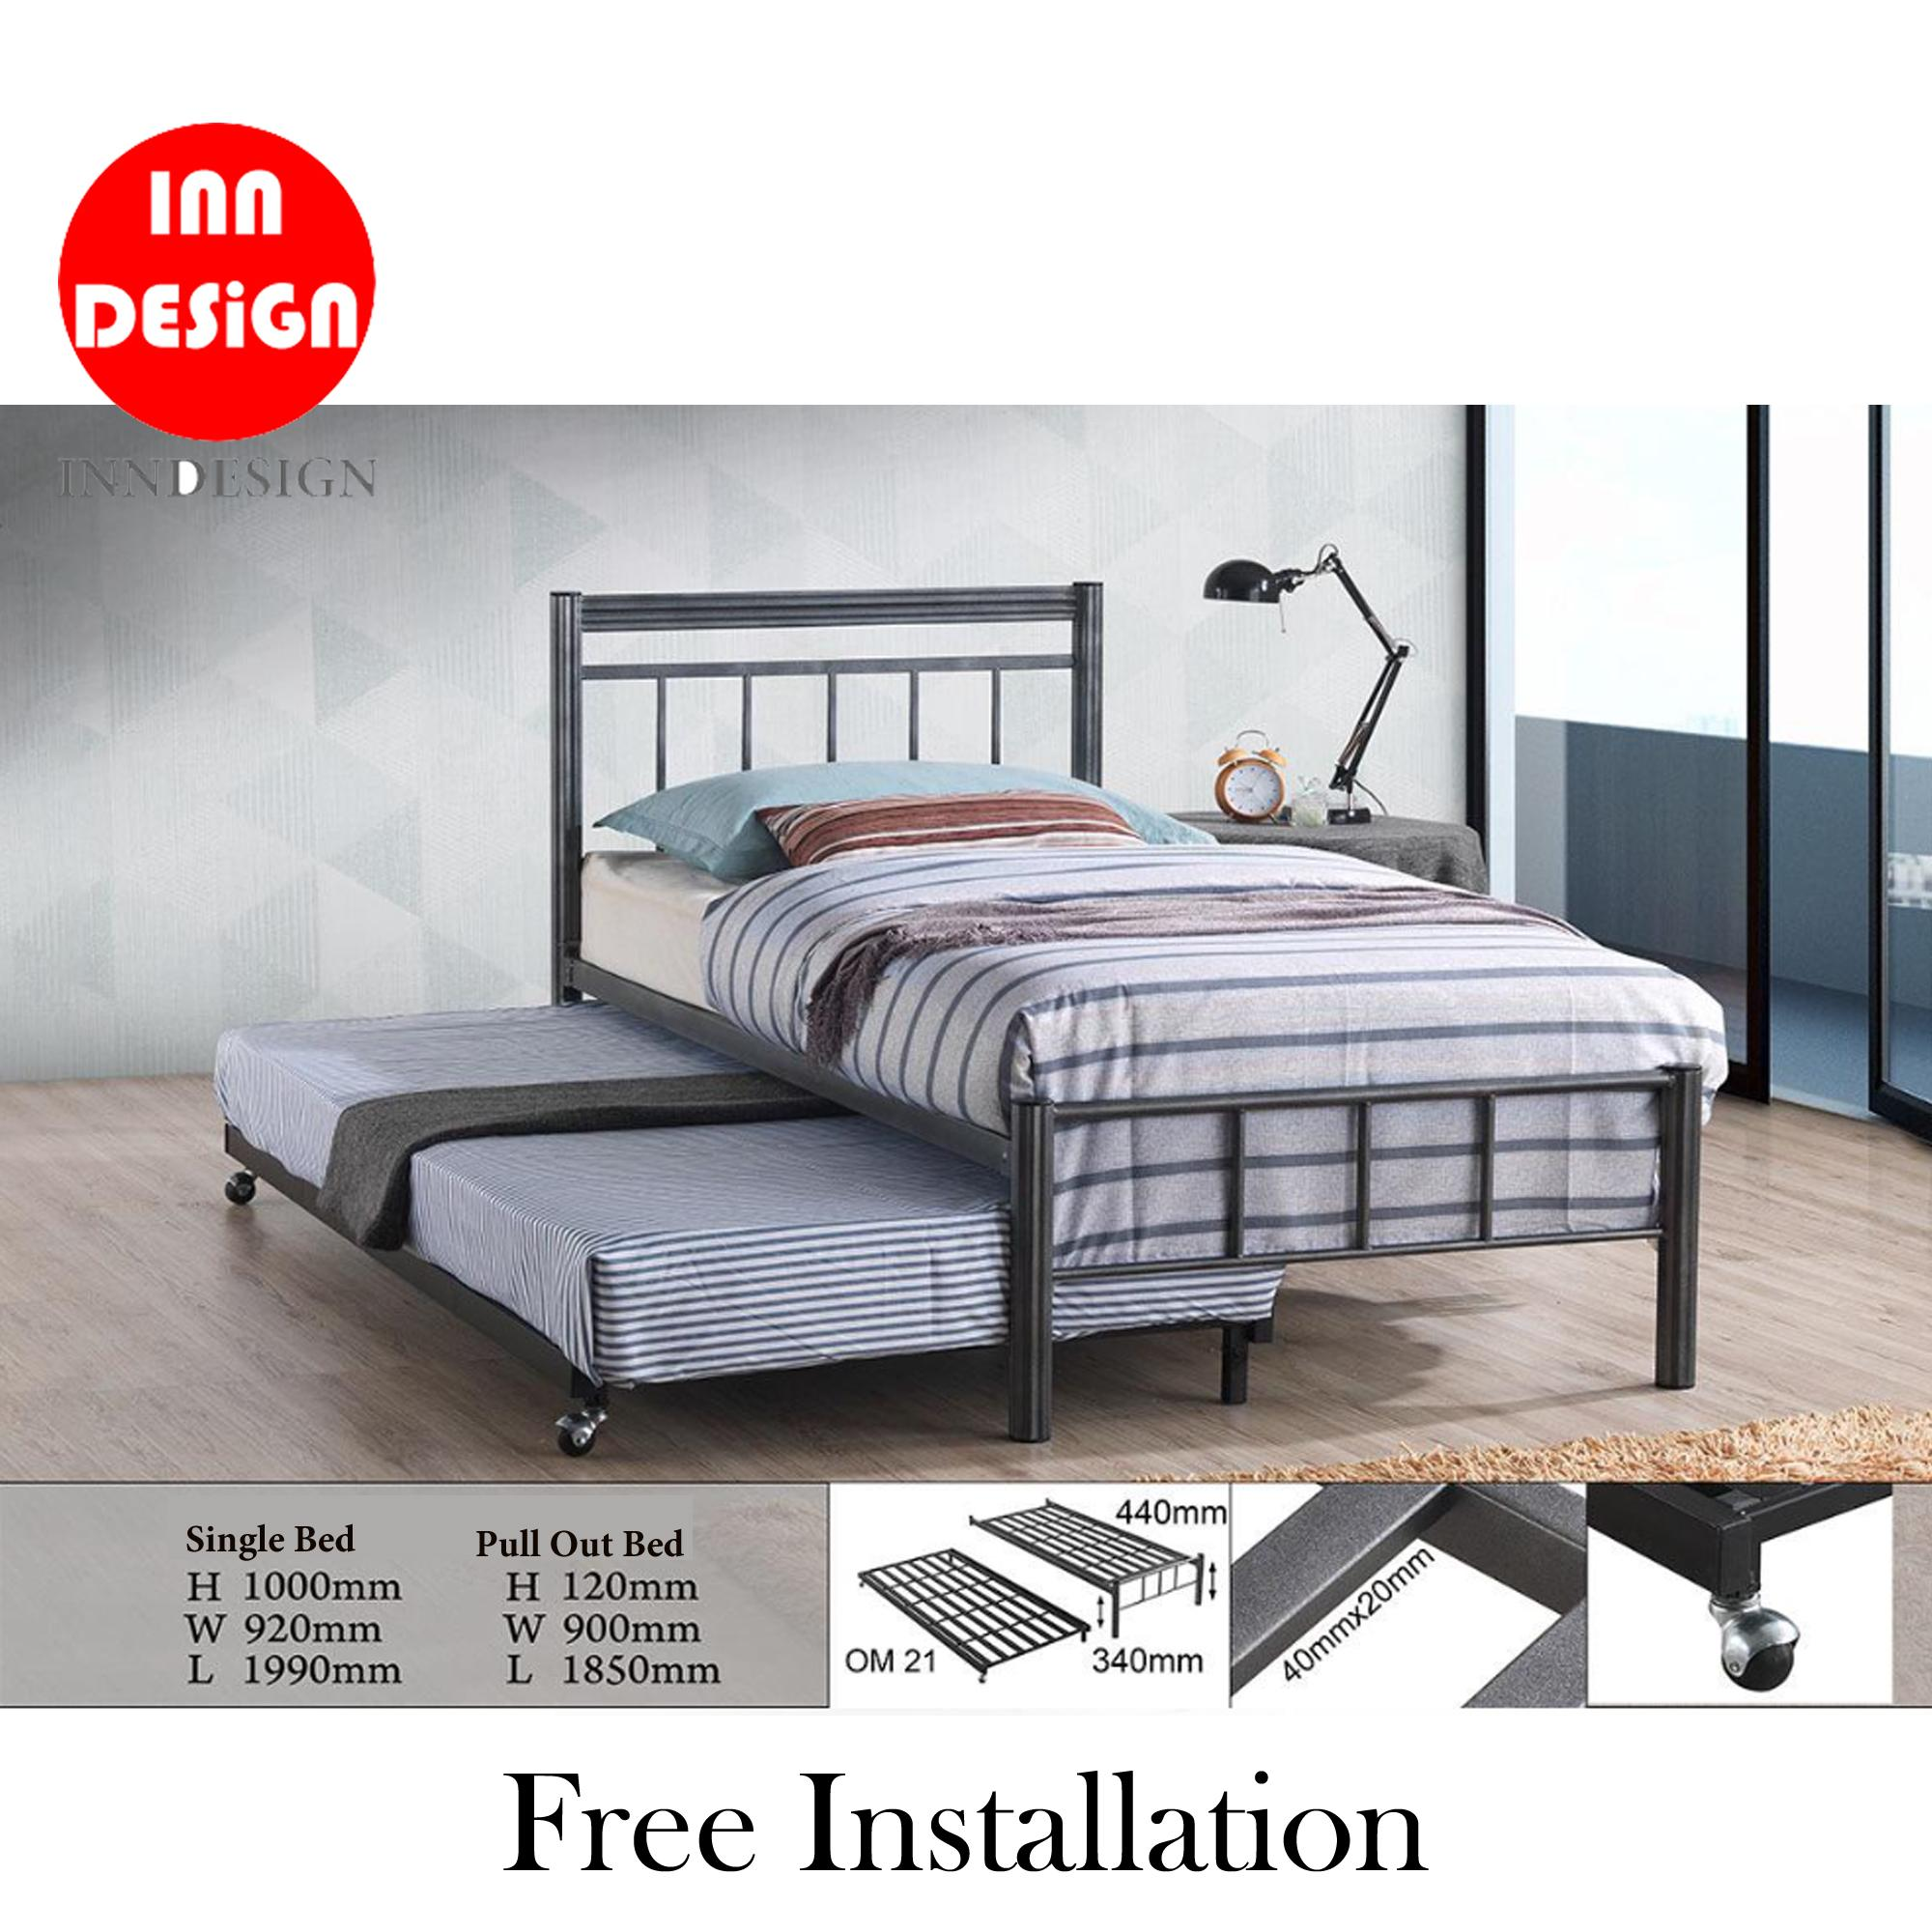 [6 Months Warranty] Emmie Solid Single Metal Bedframe With Add-On PullOut Bed (Free Delivery and Installation)